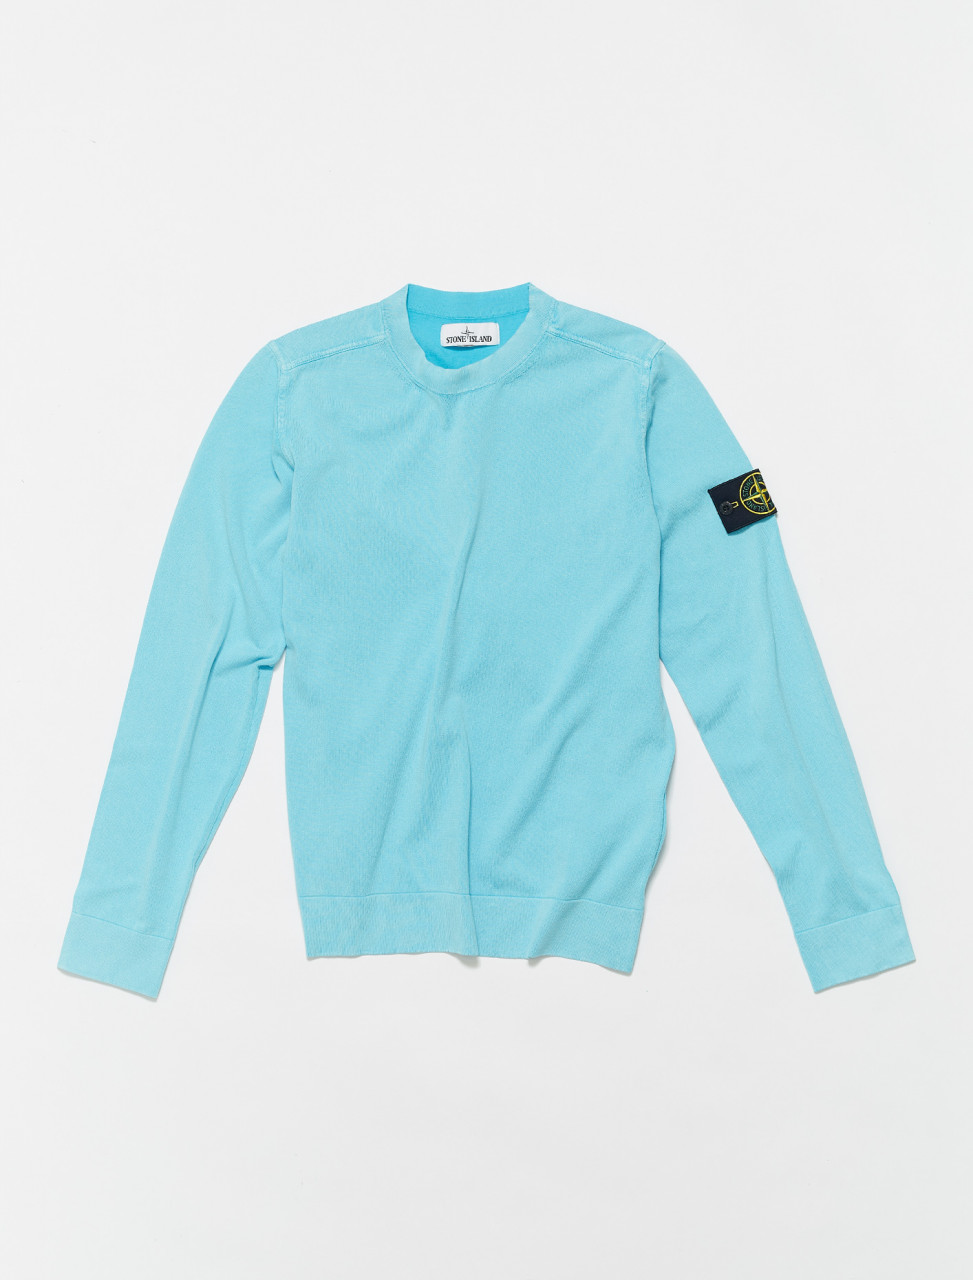 MO7415554D9-V0042 STONE ISLAND KNIT SWEATER IN TURCHESE